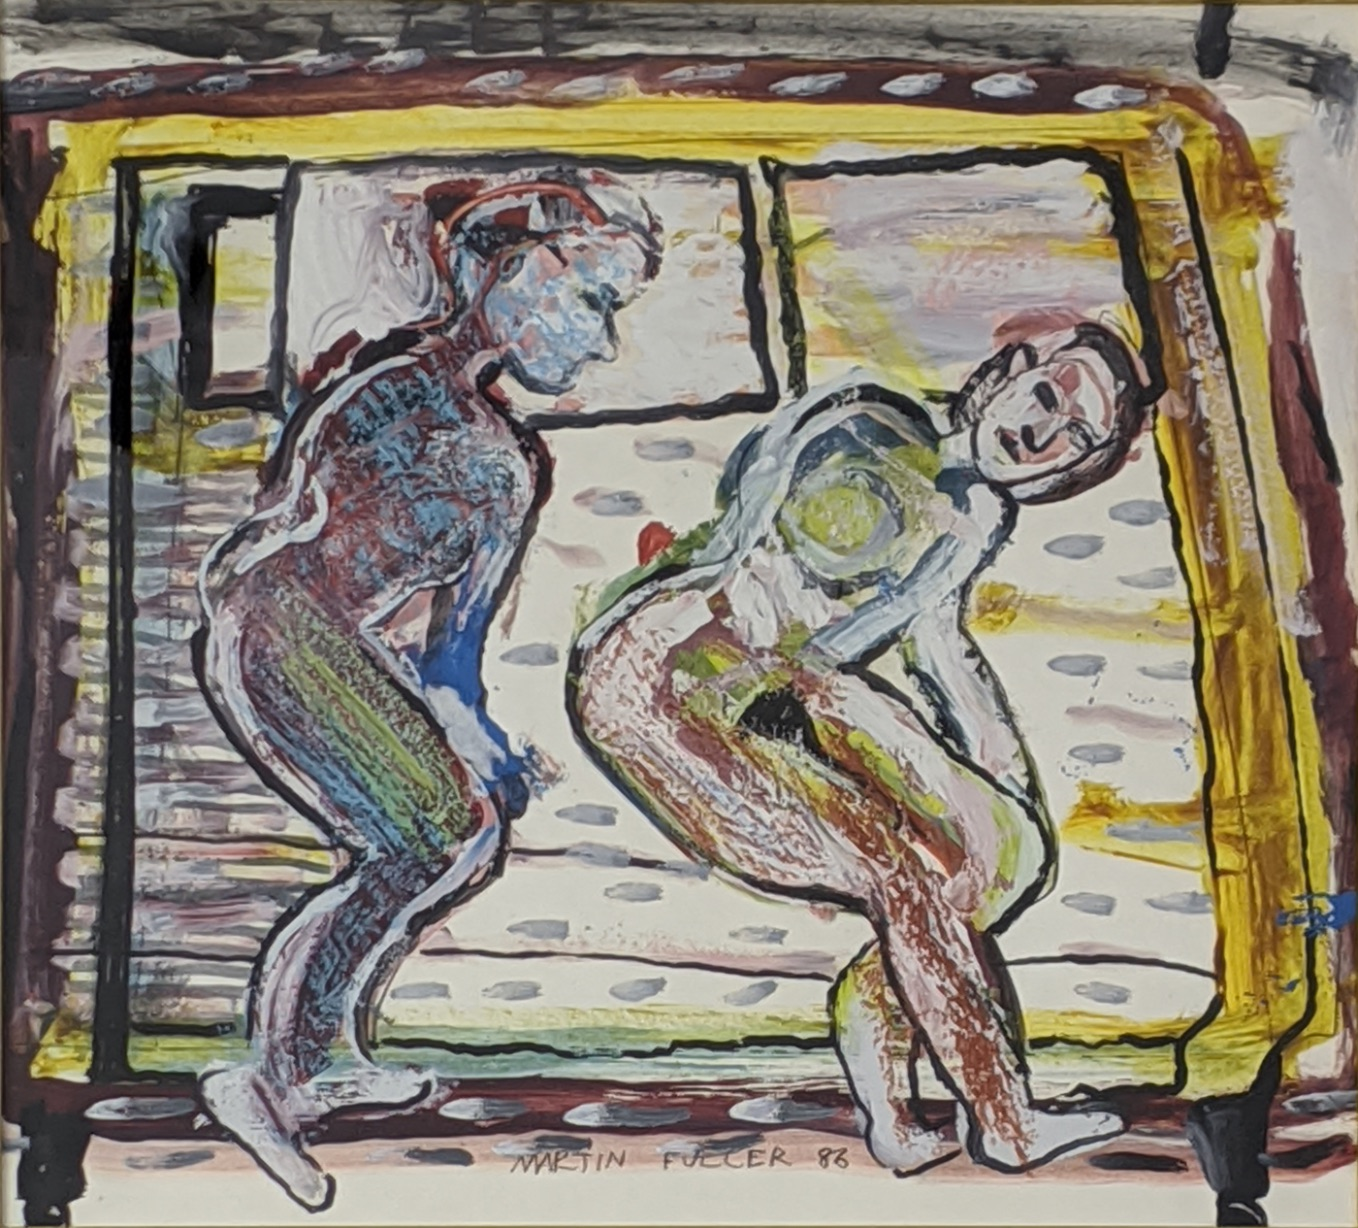 Martin Fuller (b.1943), two nudes, mixed media on paper, signed in pen and dated 83 to lower middle,